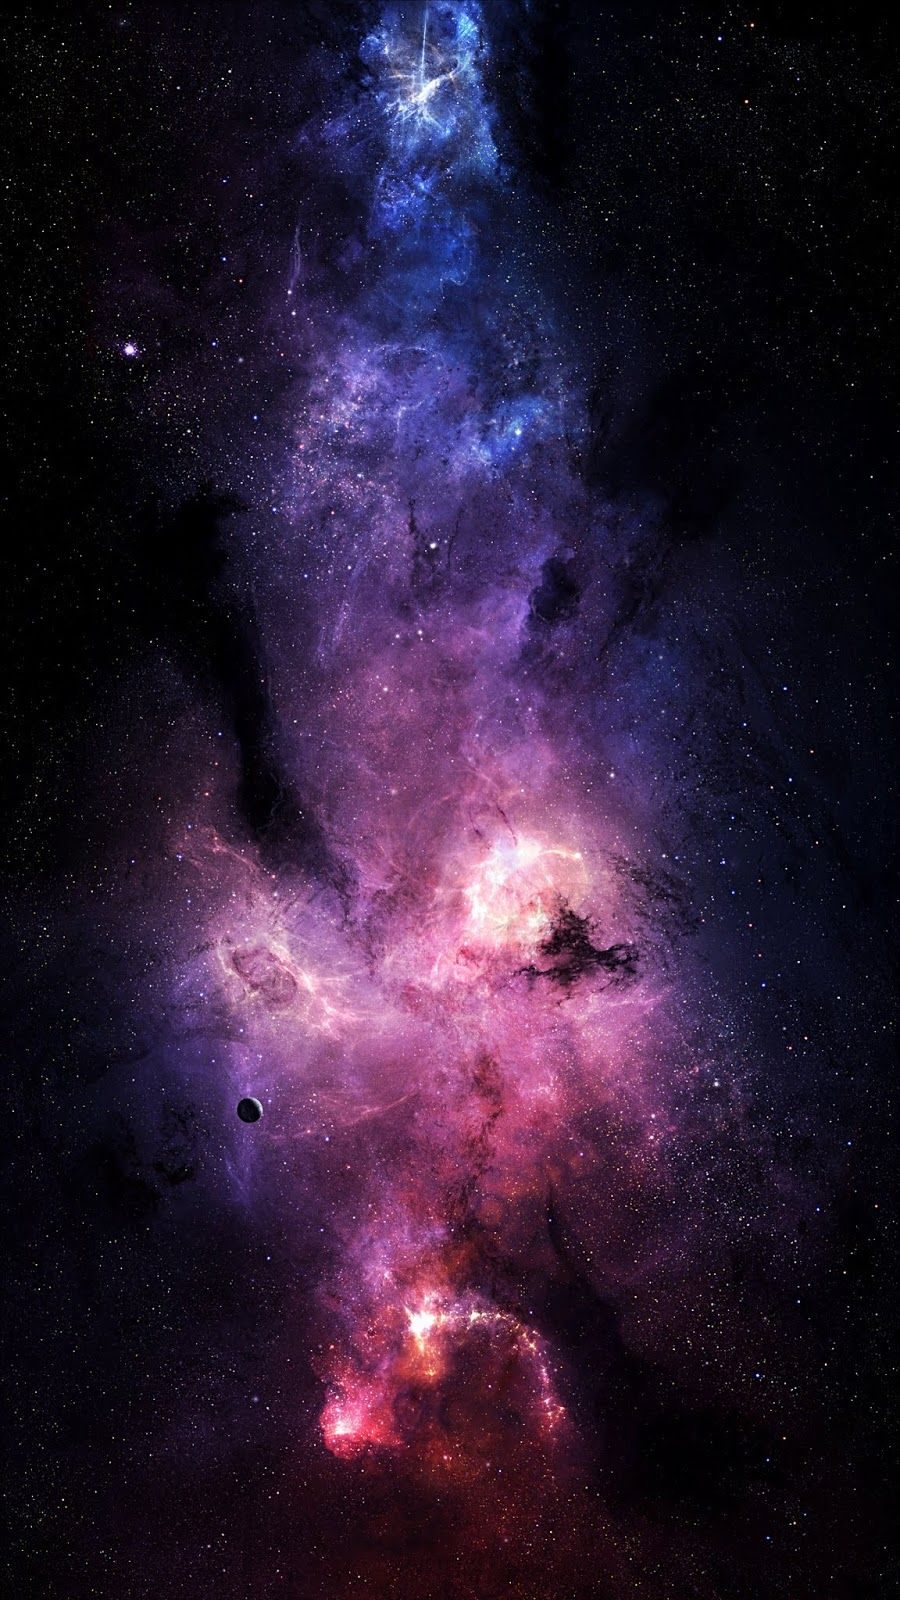 Space Wallpaper Iphone Android Background Followme Iphone Wallpaper Sky Wallpaper Space Android Wallpaper Space